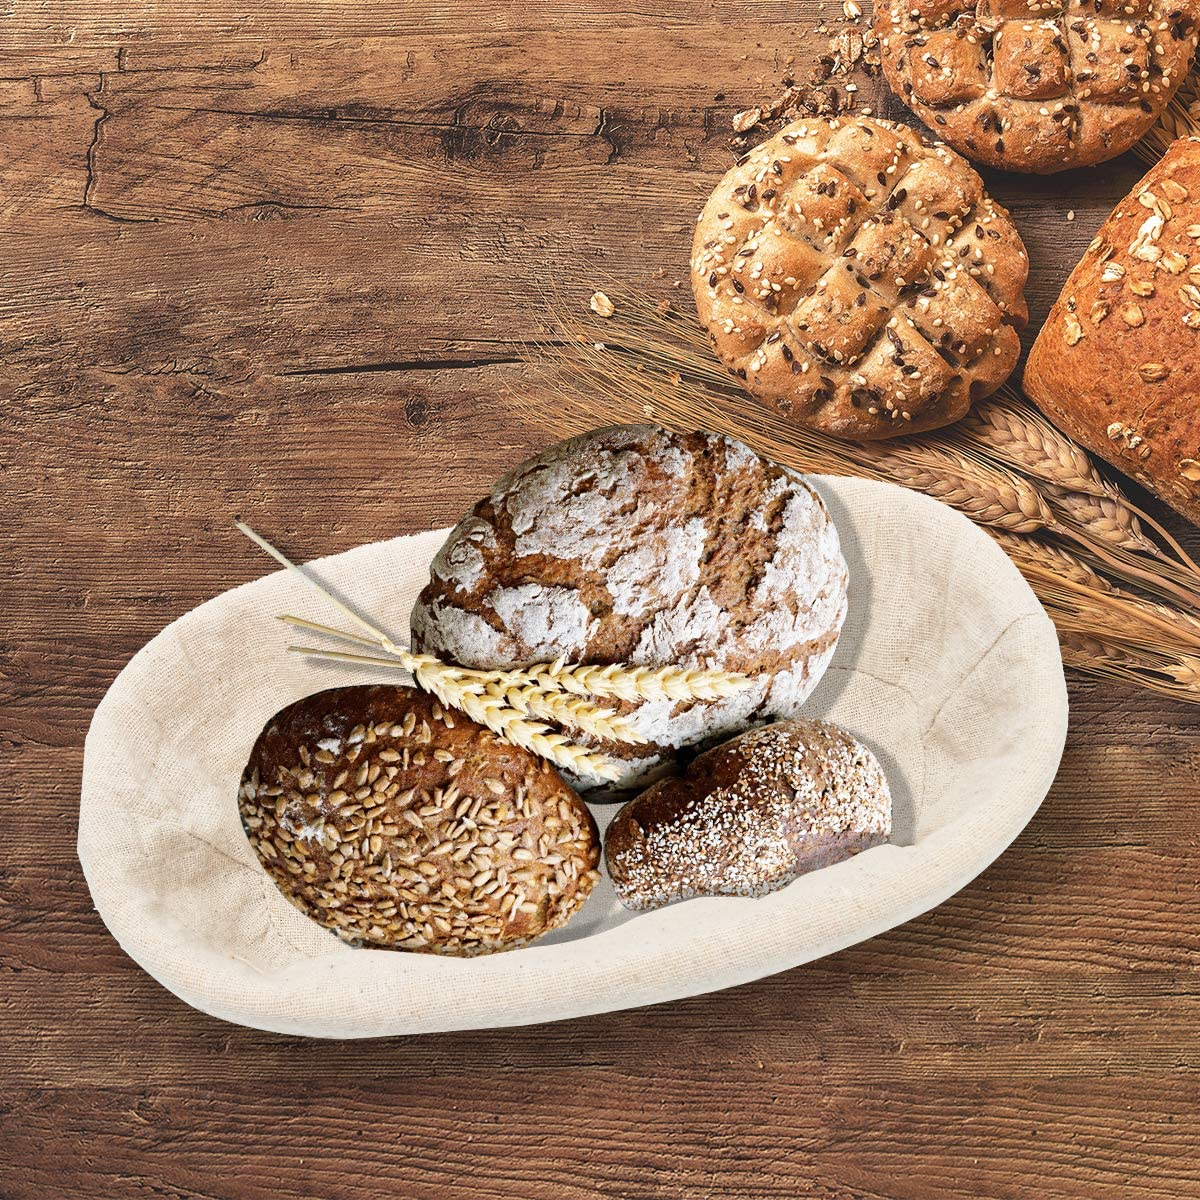 Ahier Premium Oval Banneton Basket with Liner Perfect Brotform Proofing Basket for Making Beautiful Bread 10 x 6 x 4 inch